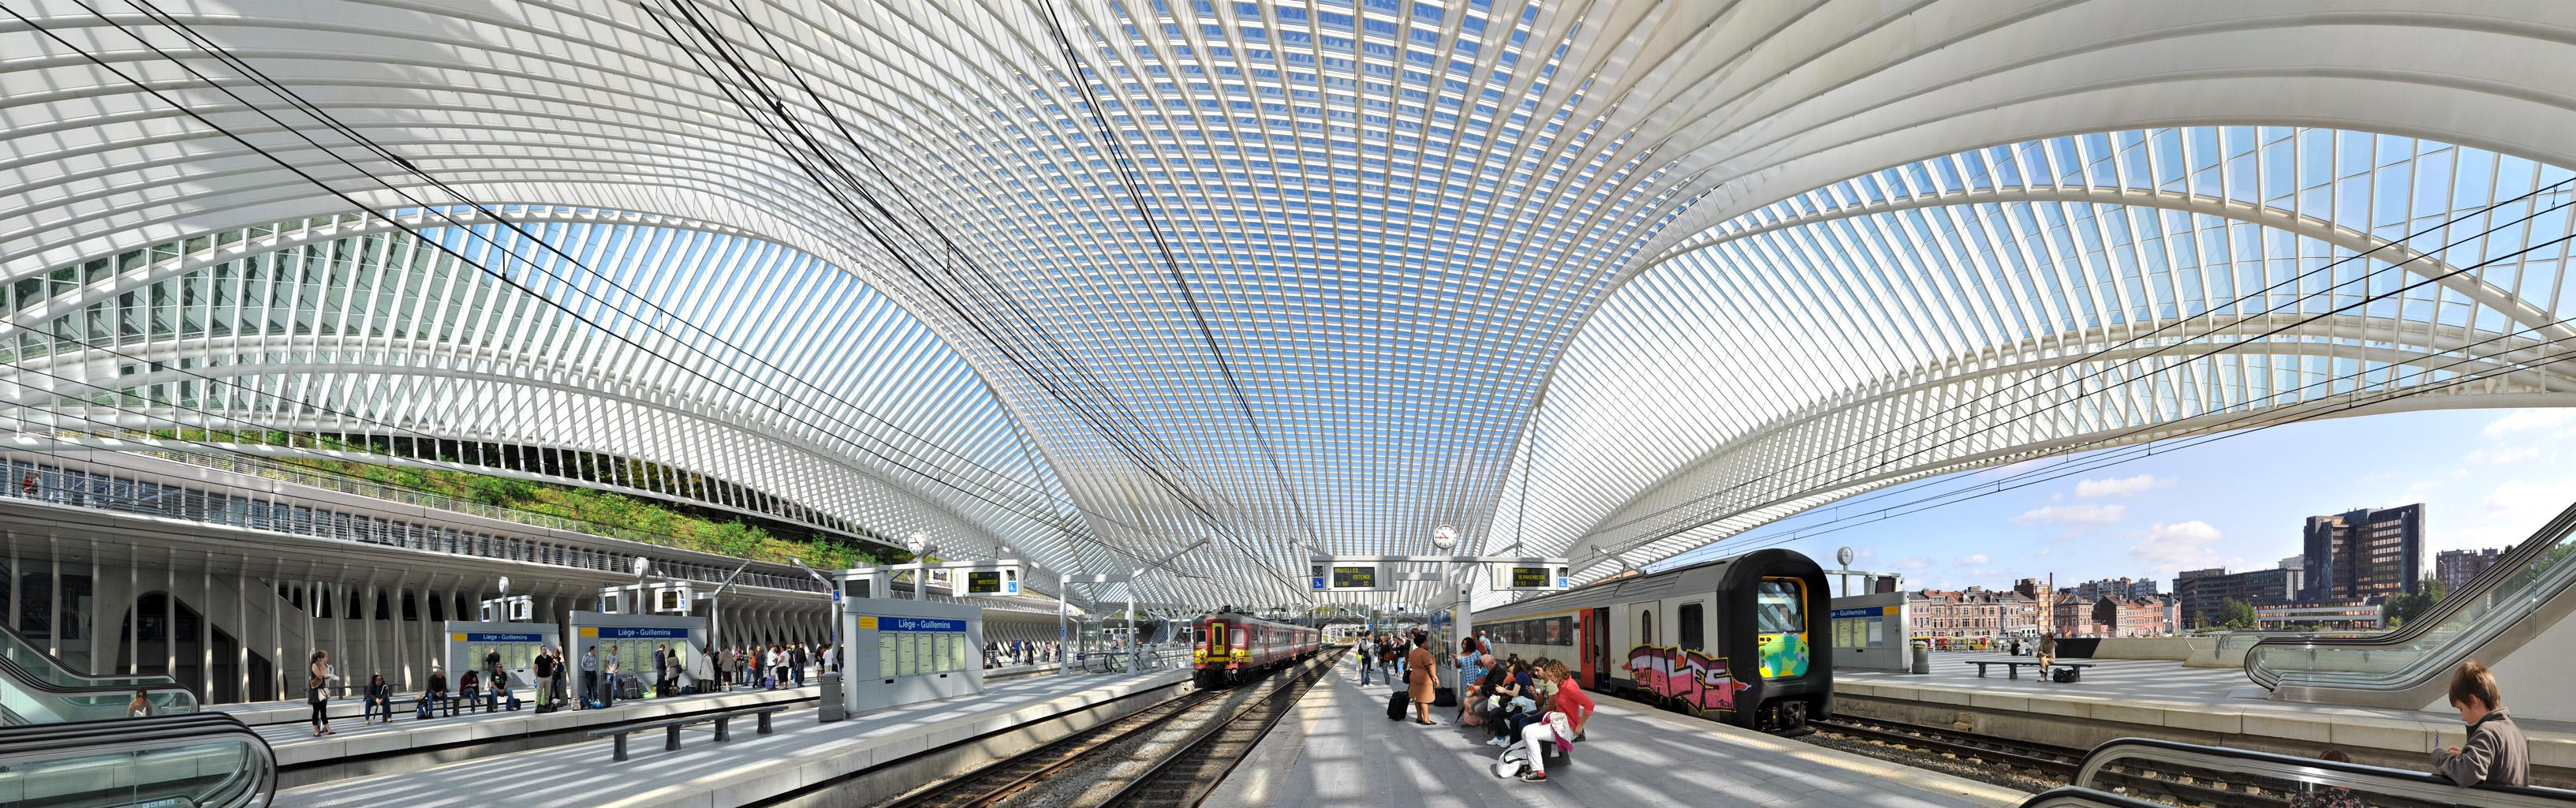 The Guillemins Railways station, 2010 - Contemporary Panoramic Color Photography